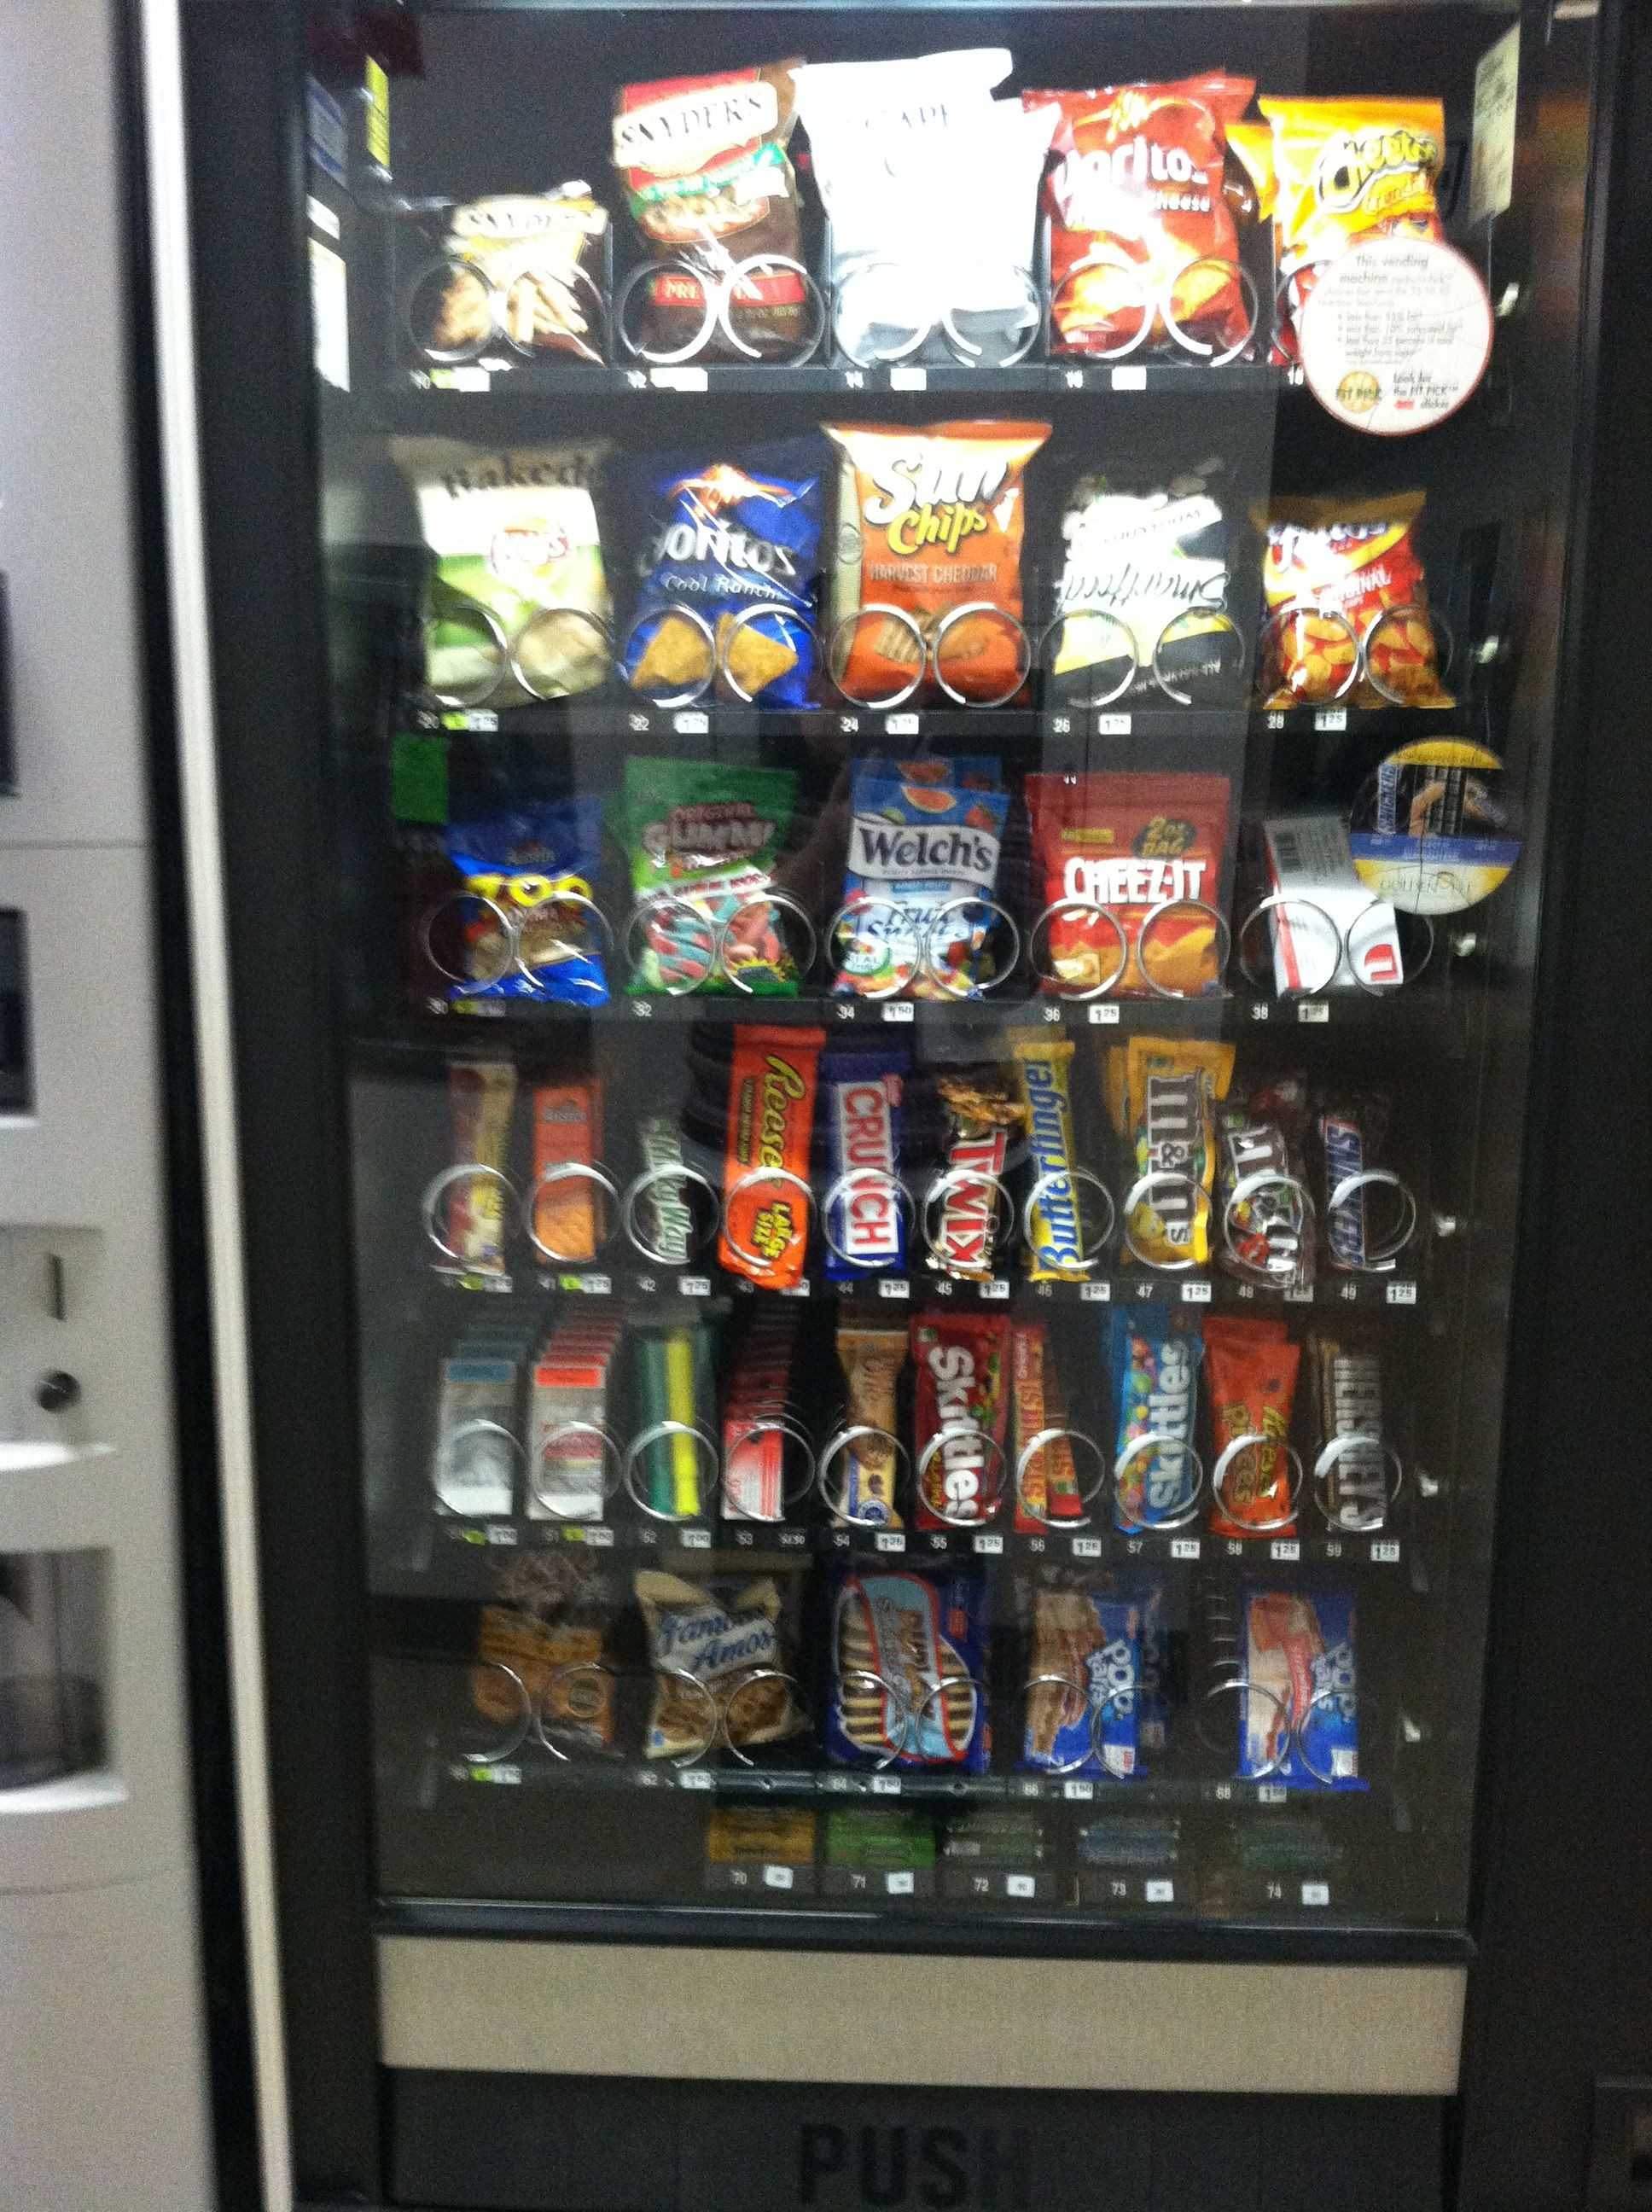 Index of library images illusions best - The Library S Vending Machines Not Only Dispense Pepsi Cheetos And Skittles But Also